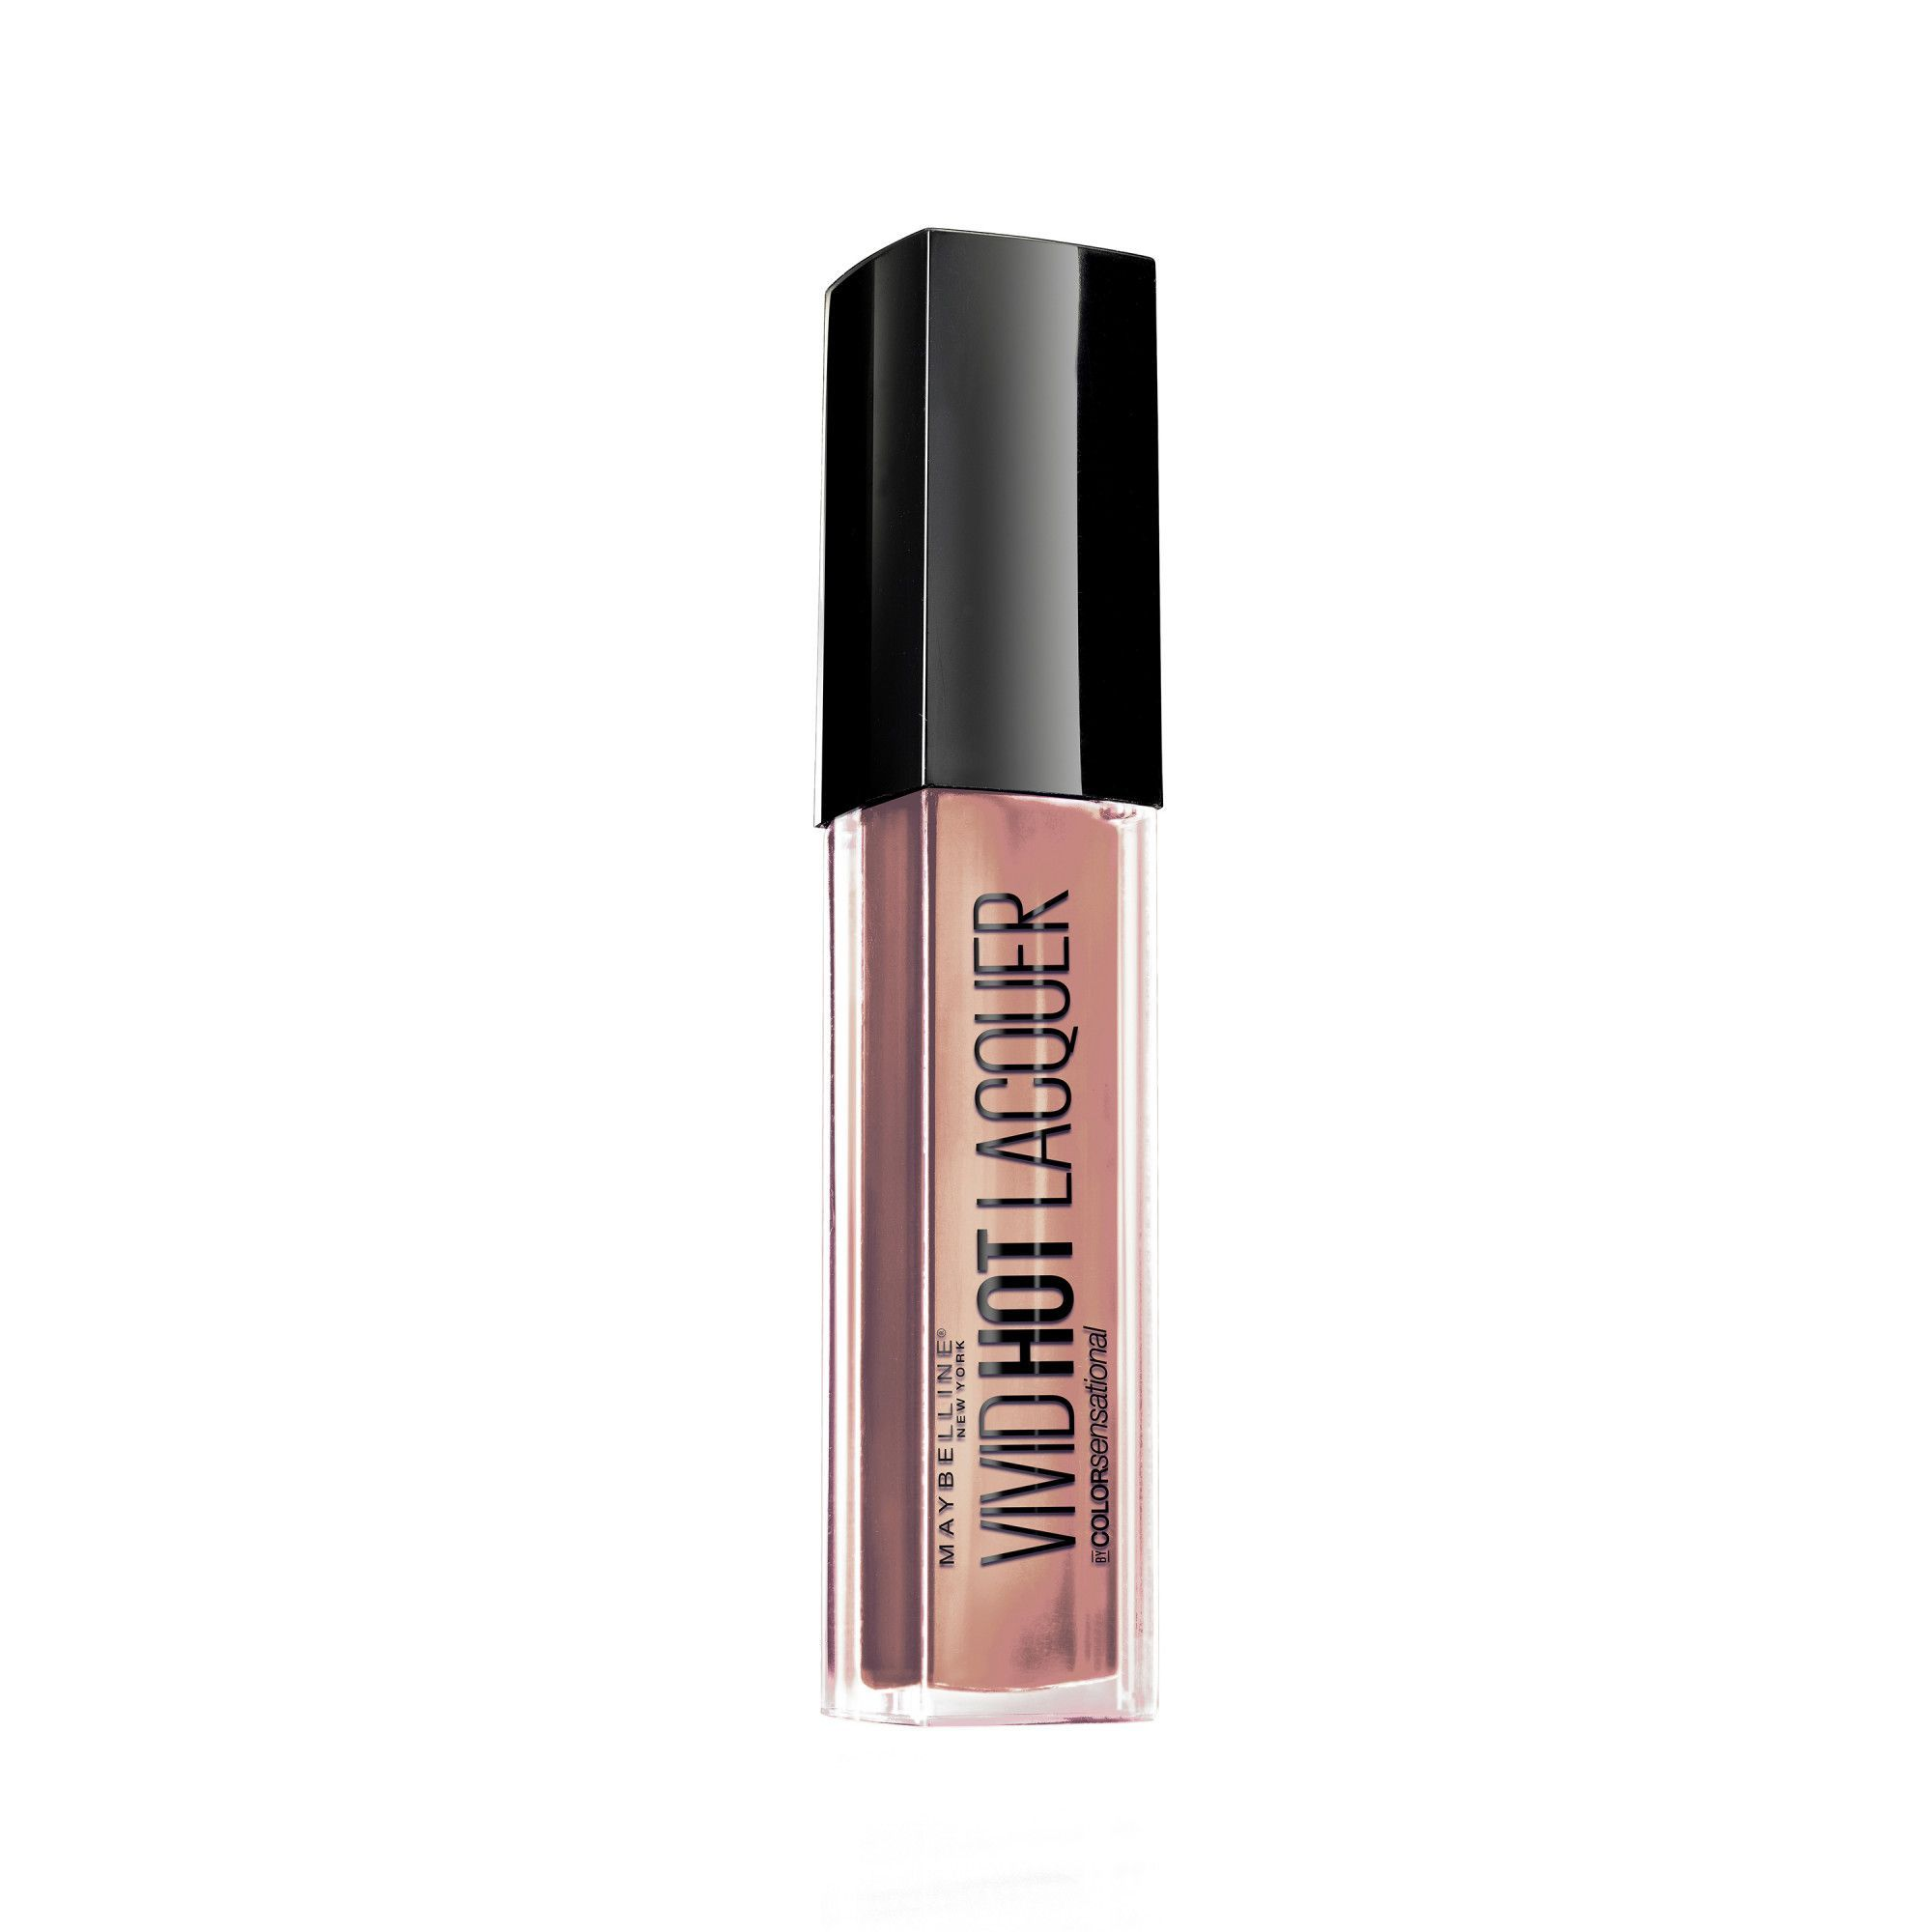 Ruj Lichid Maybelline New York Color Sensational Vivid Hot Lacquer